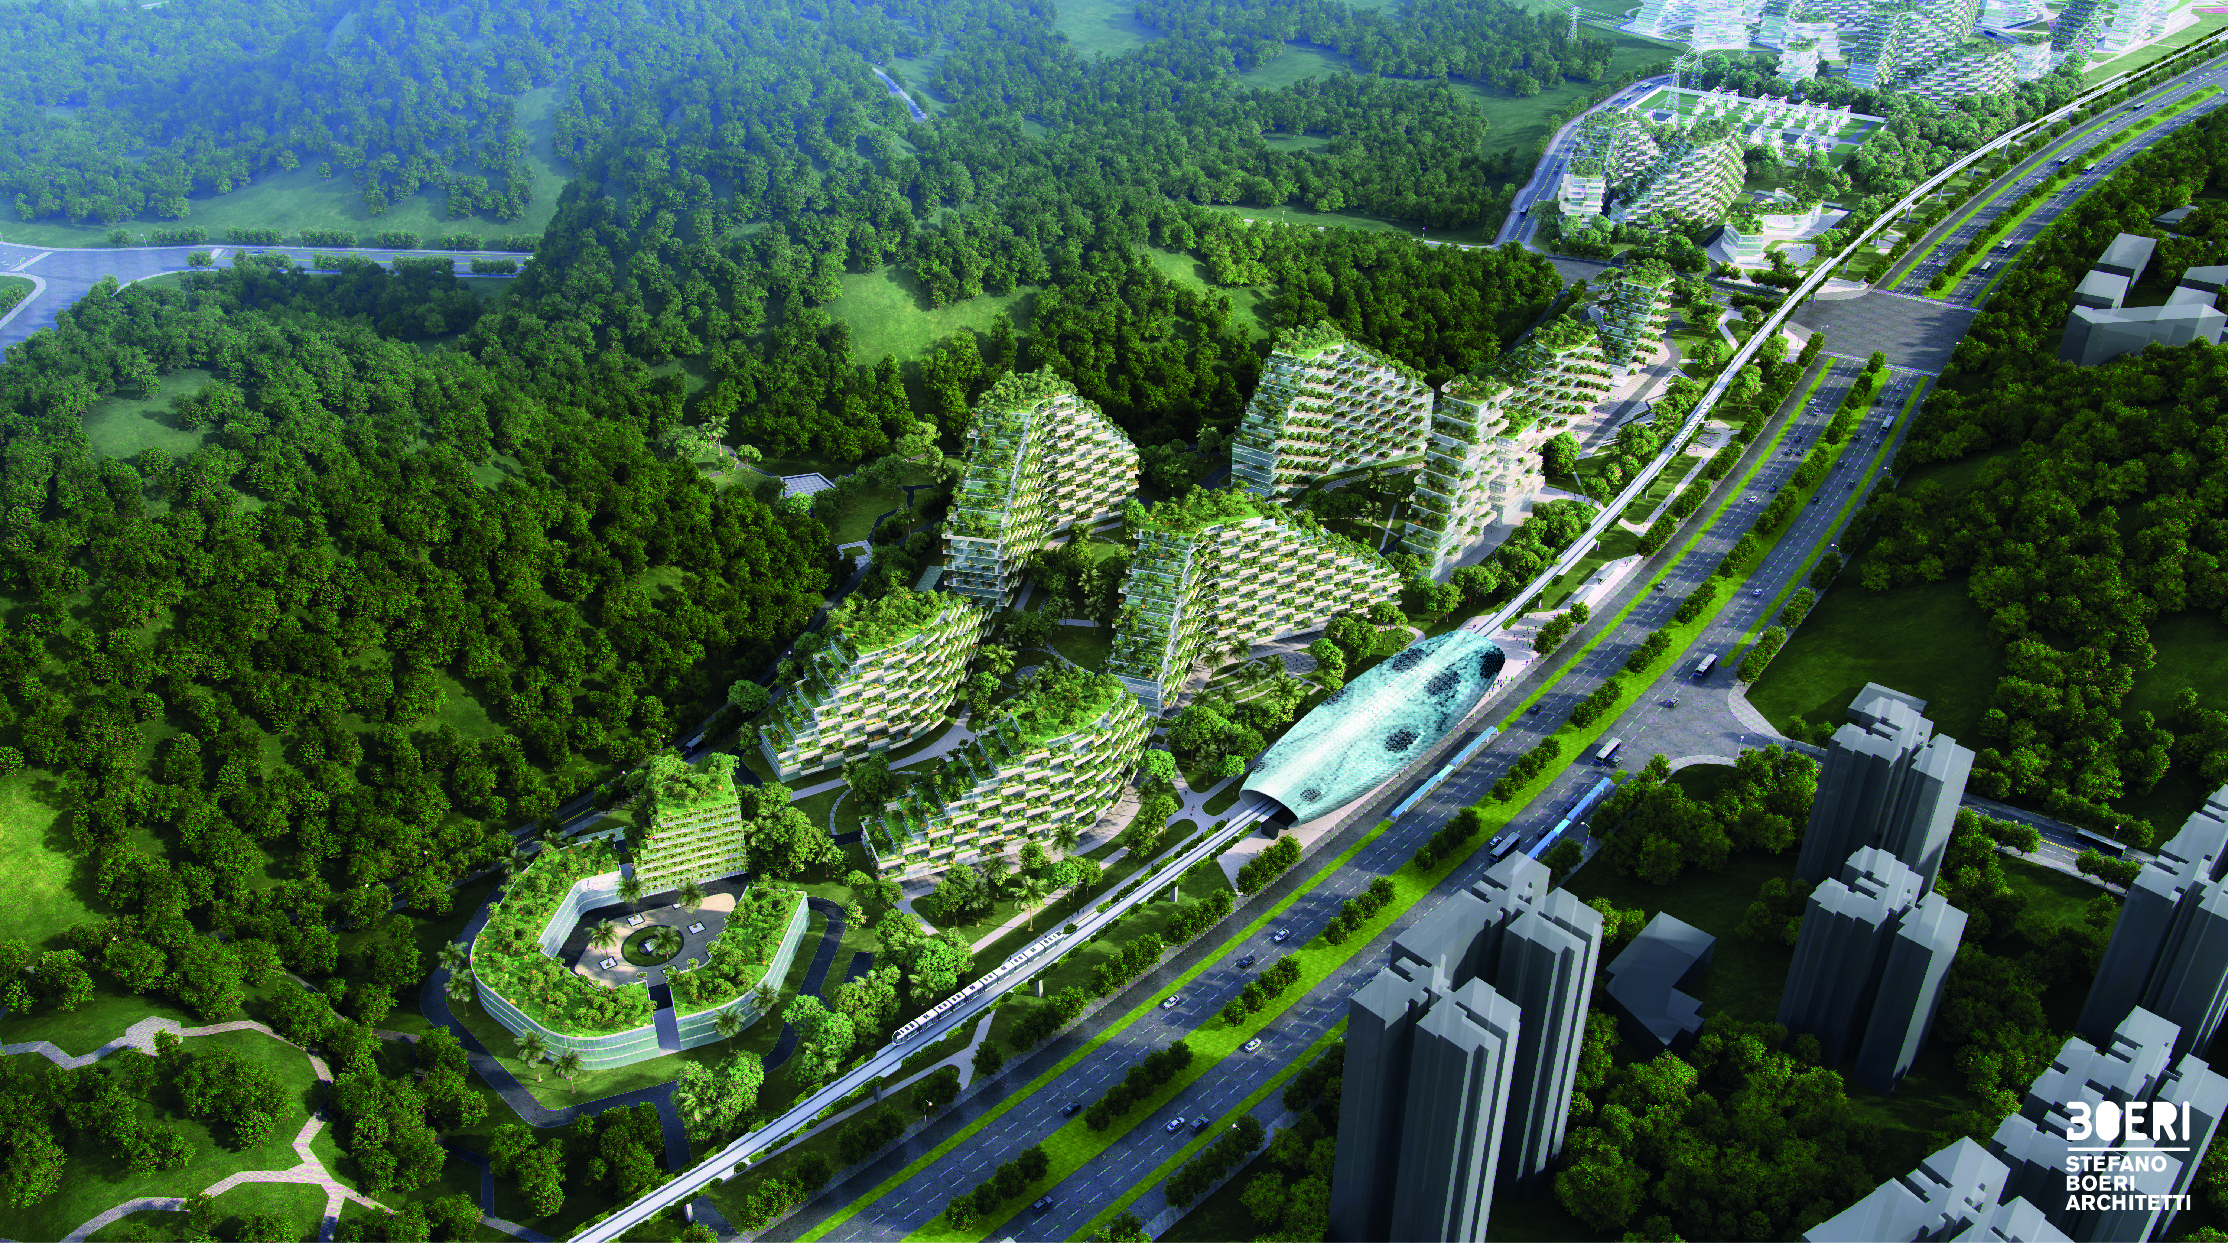 Stefano_Boeri_Architetti_Liuzhou_Forest_city_view_1.jpg